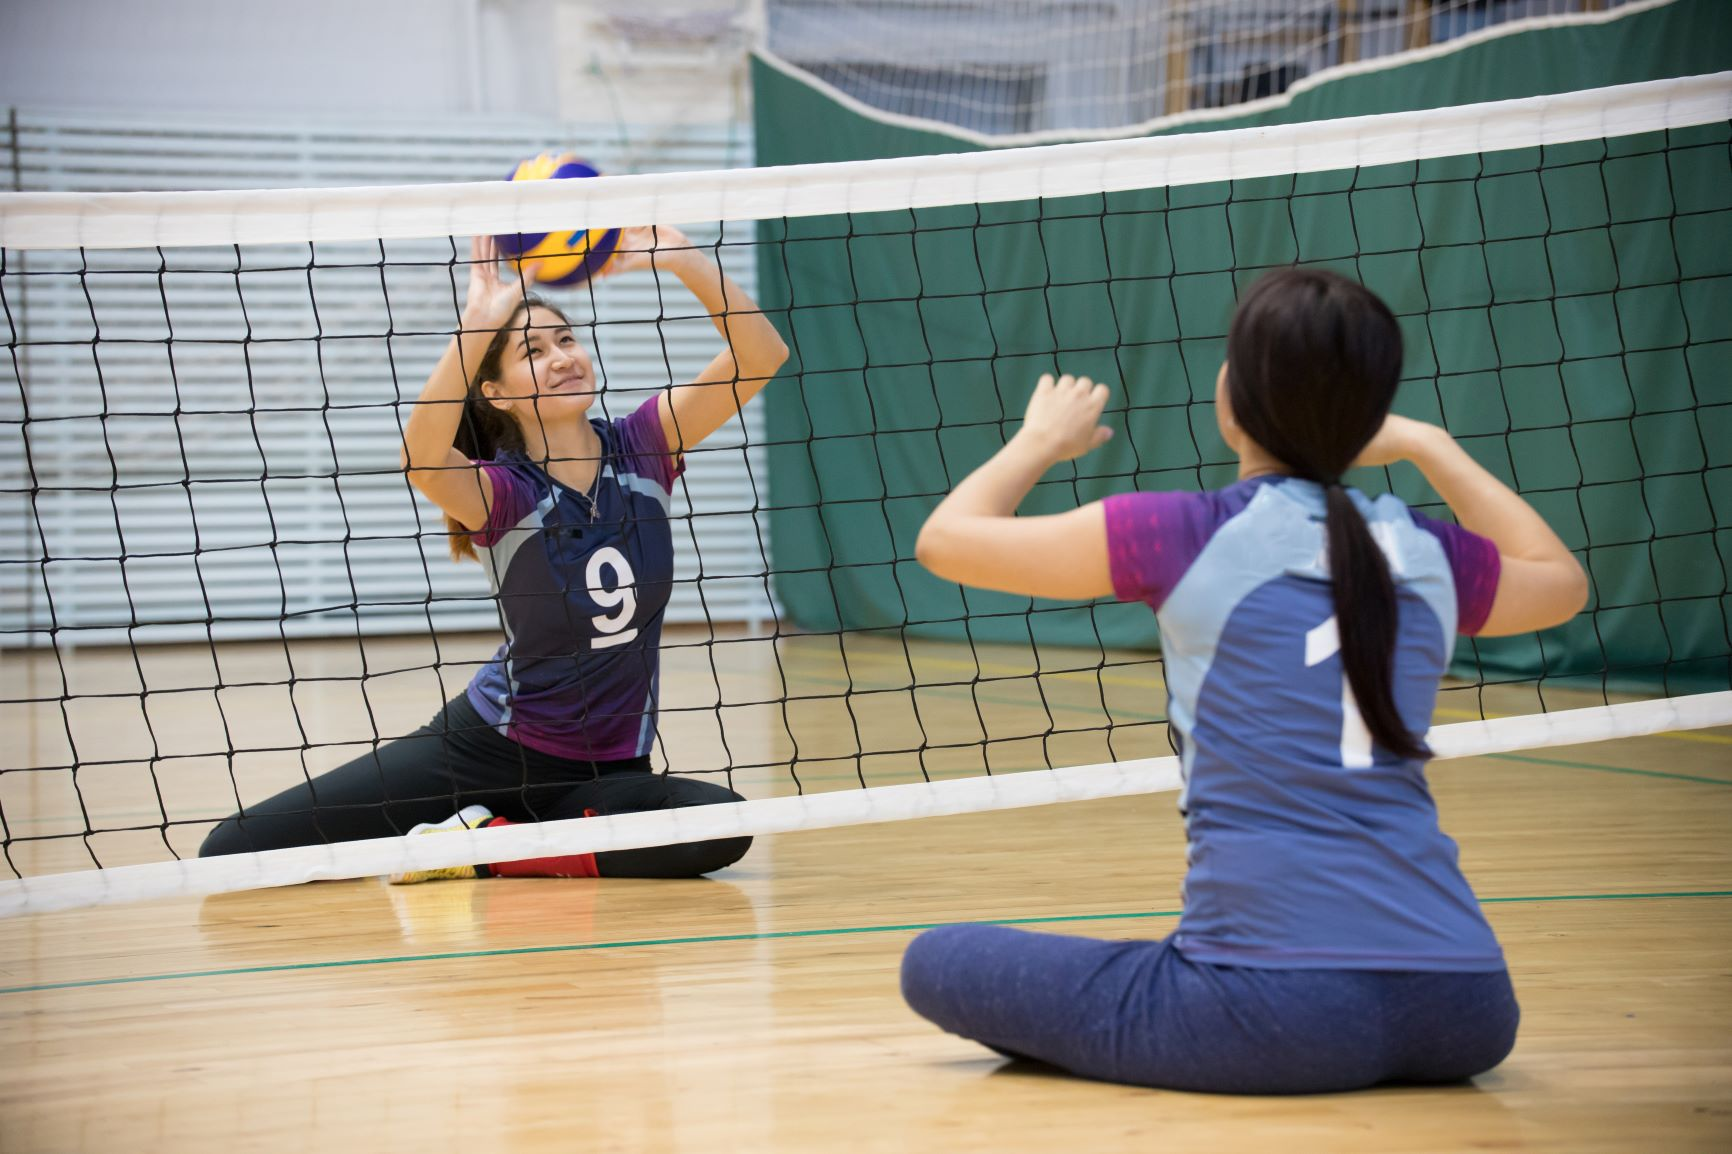 Two young women practice sitting volleyball